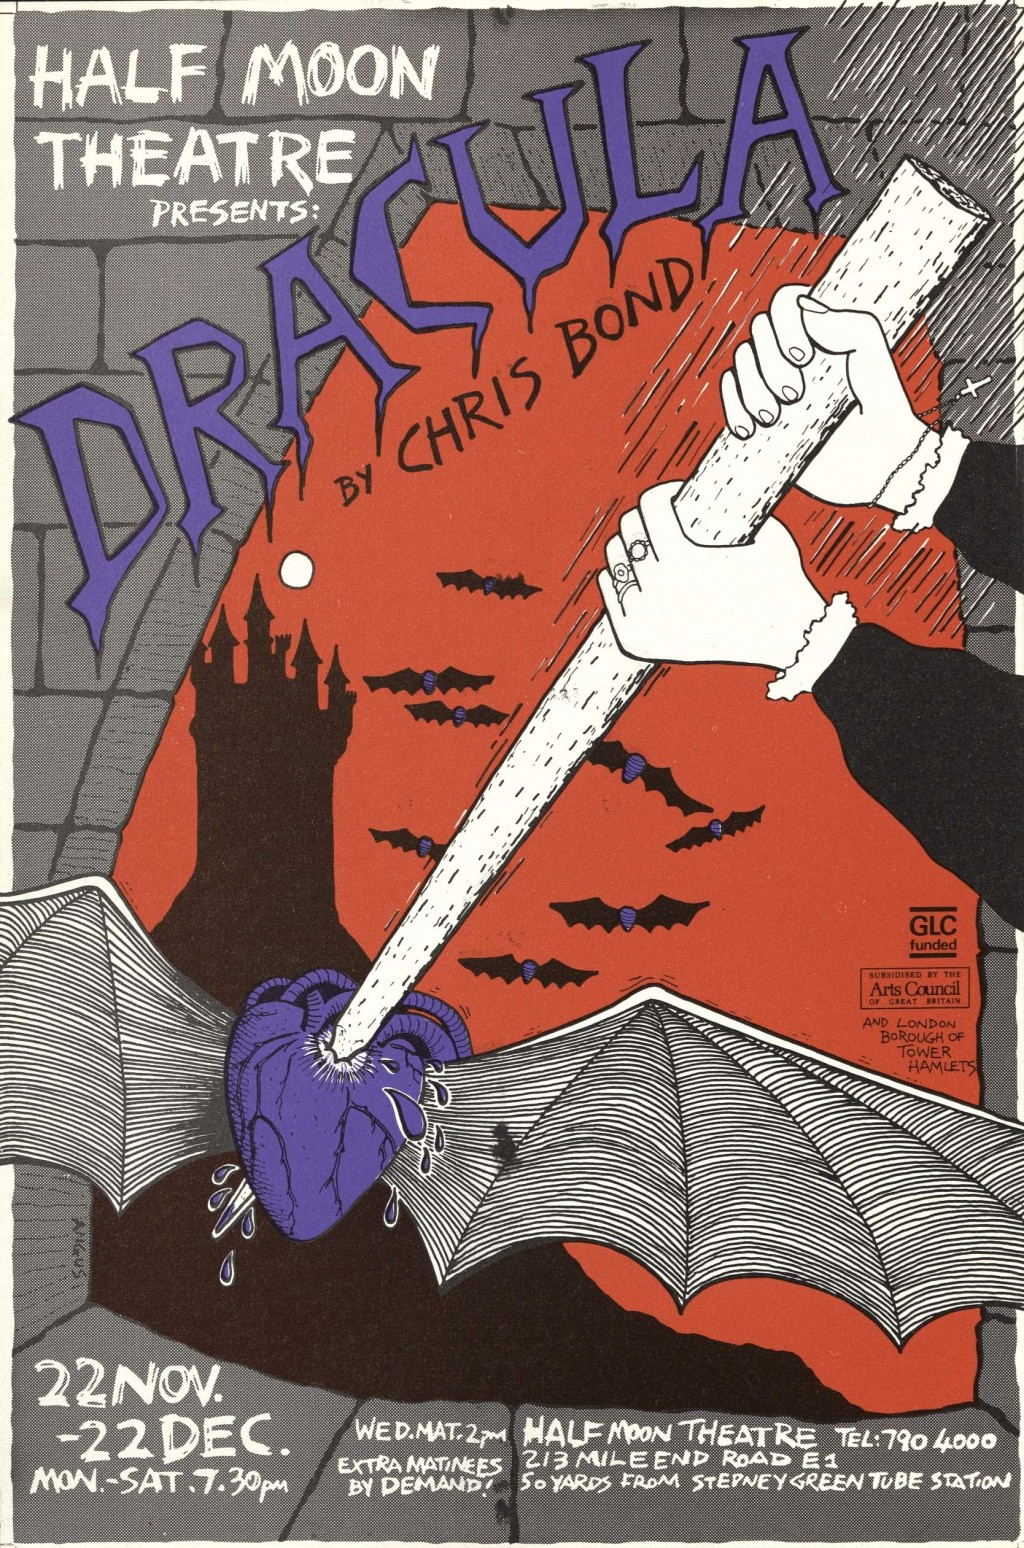 Dracula Flyer- 1984 (Front)